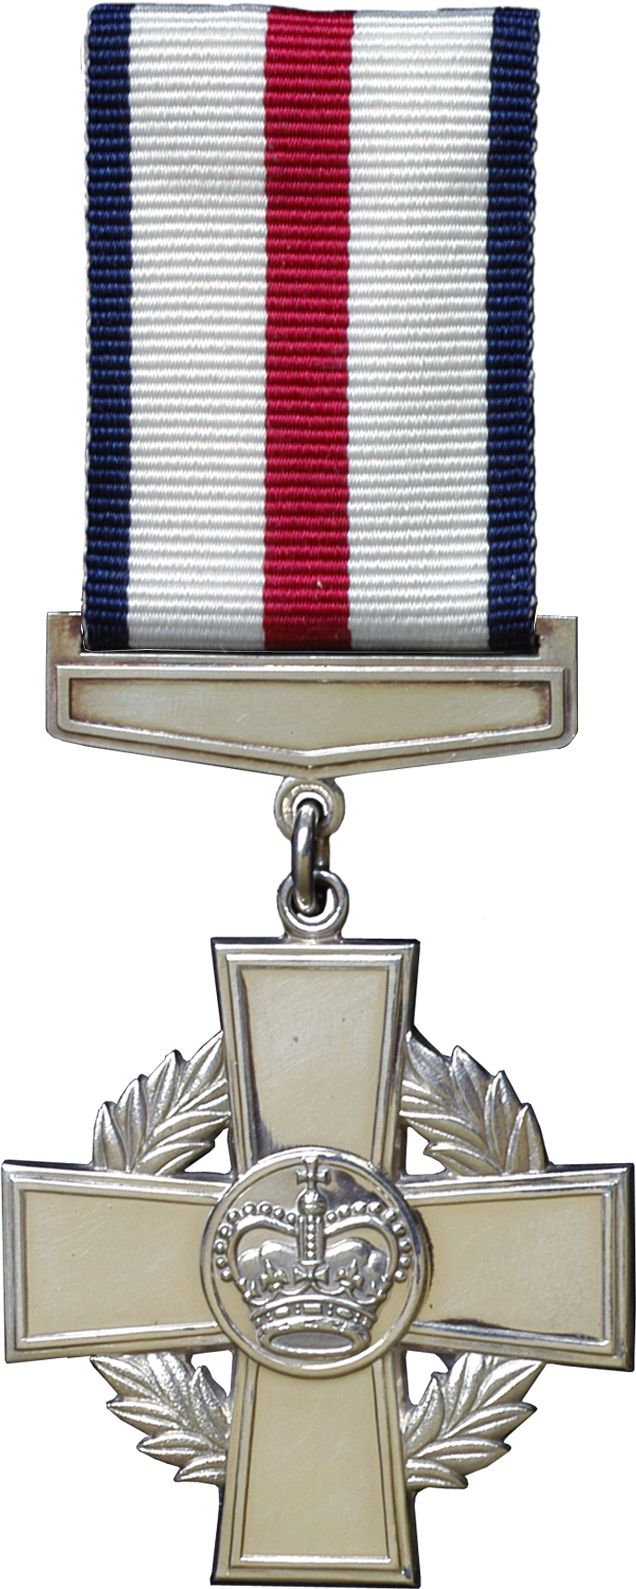 British Conspicuous Gallantry Cross (CGC) is a second